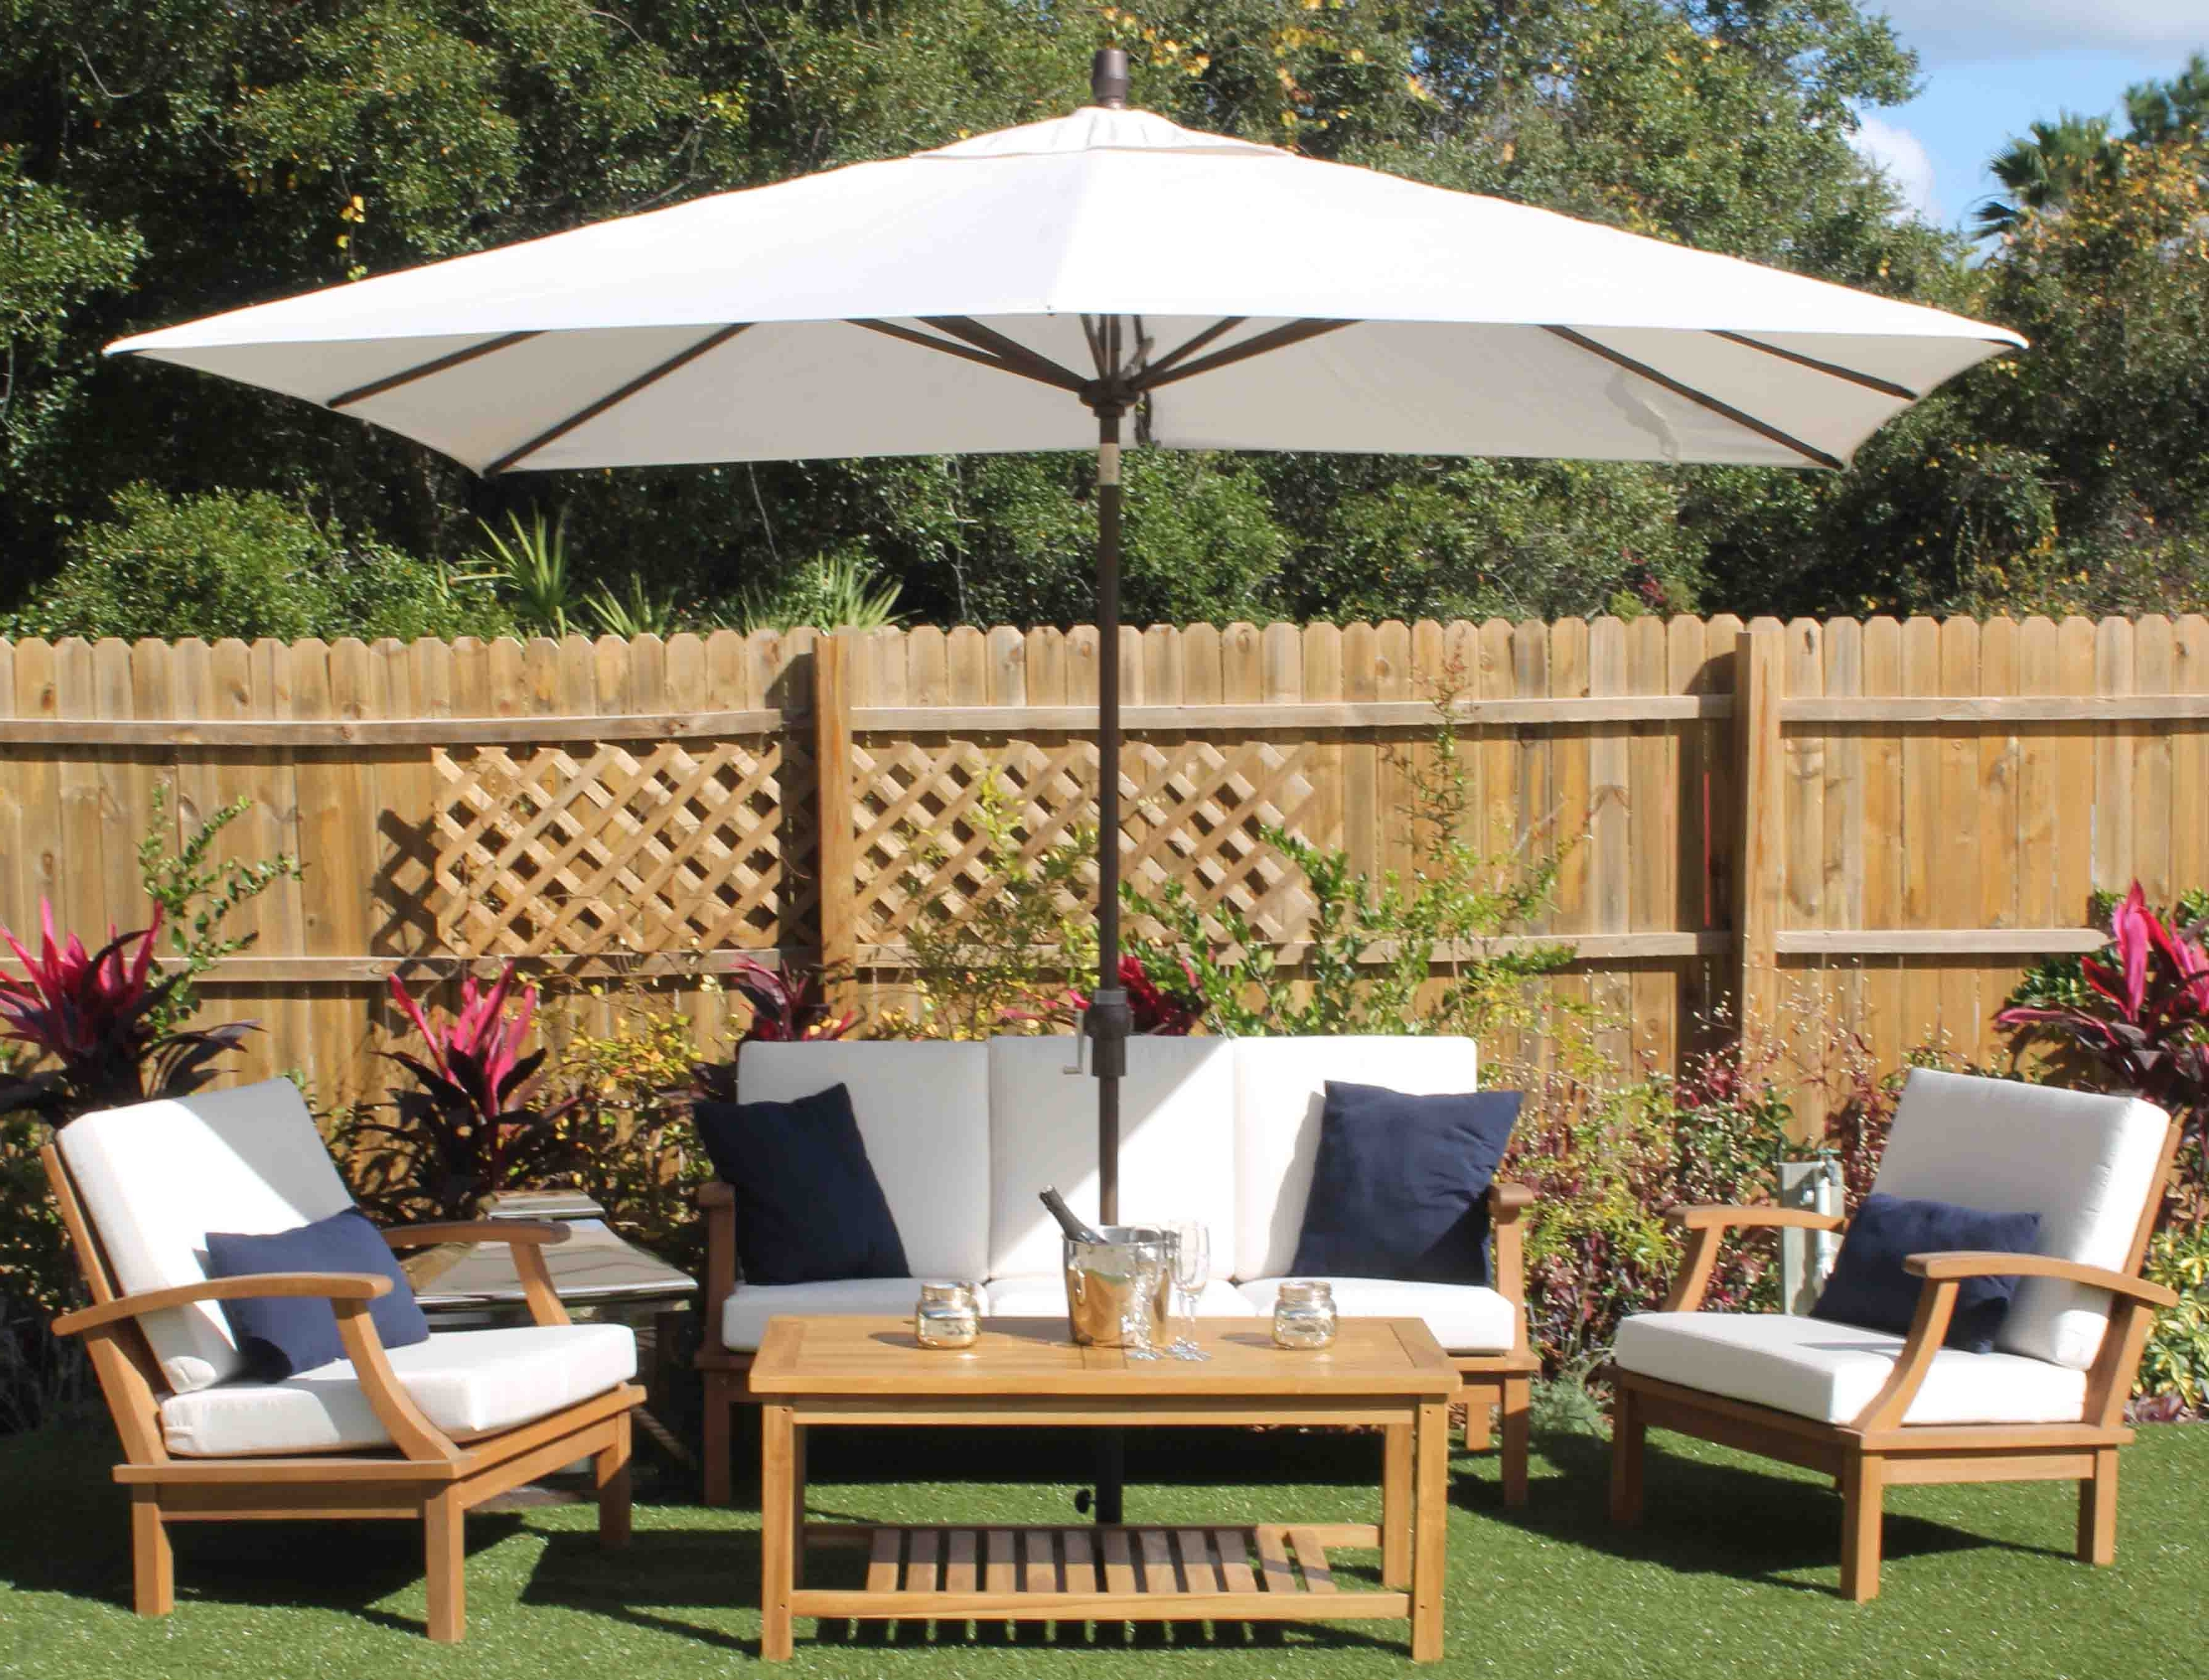 Well Known 48 Rectangular Sunbrella Patio Umbrellas, 6#039; X 10#039; Sunbrella In Sunbrella Patio Umbrellas (View 14 of 20)